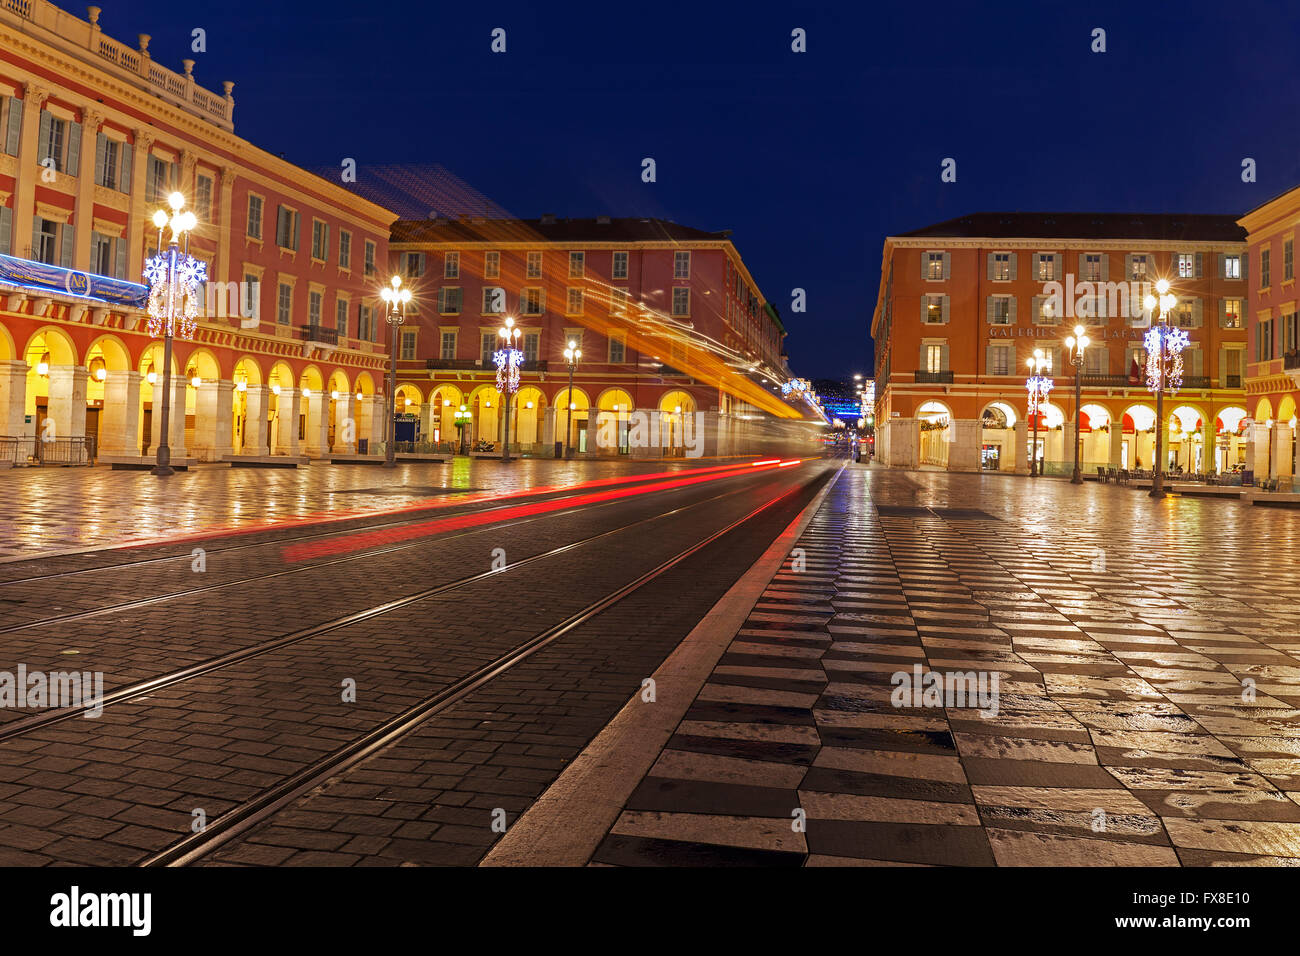 Nice, Place Massena,- Showing the square with tram lines and chequered  paving, early morning, France Stock Photo